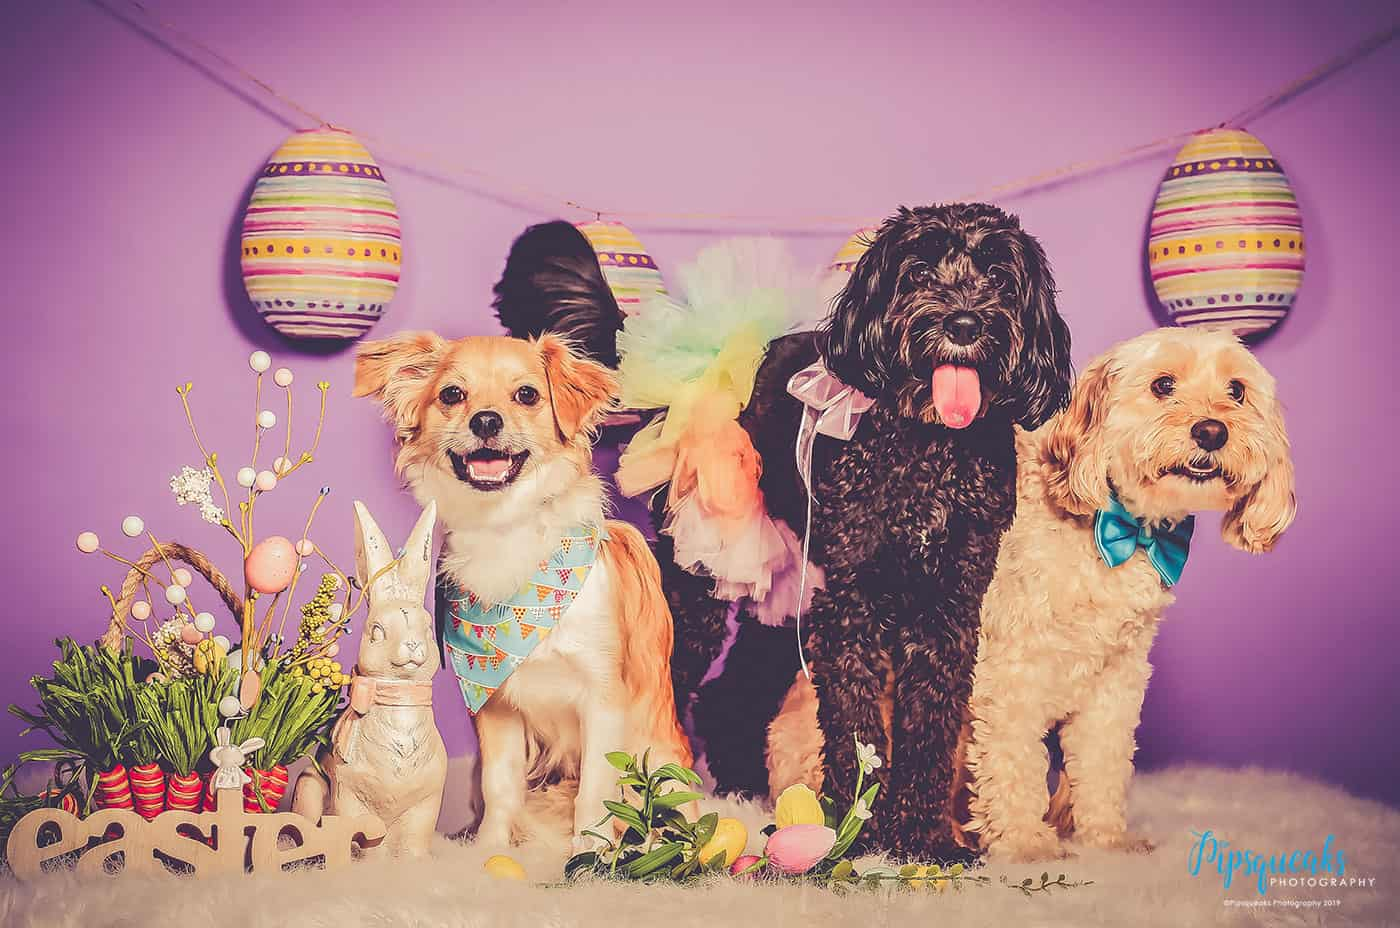 Pipsqueaks Photography, Pet photography, Pet photography Melbourne, Easter Mini photo session